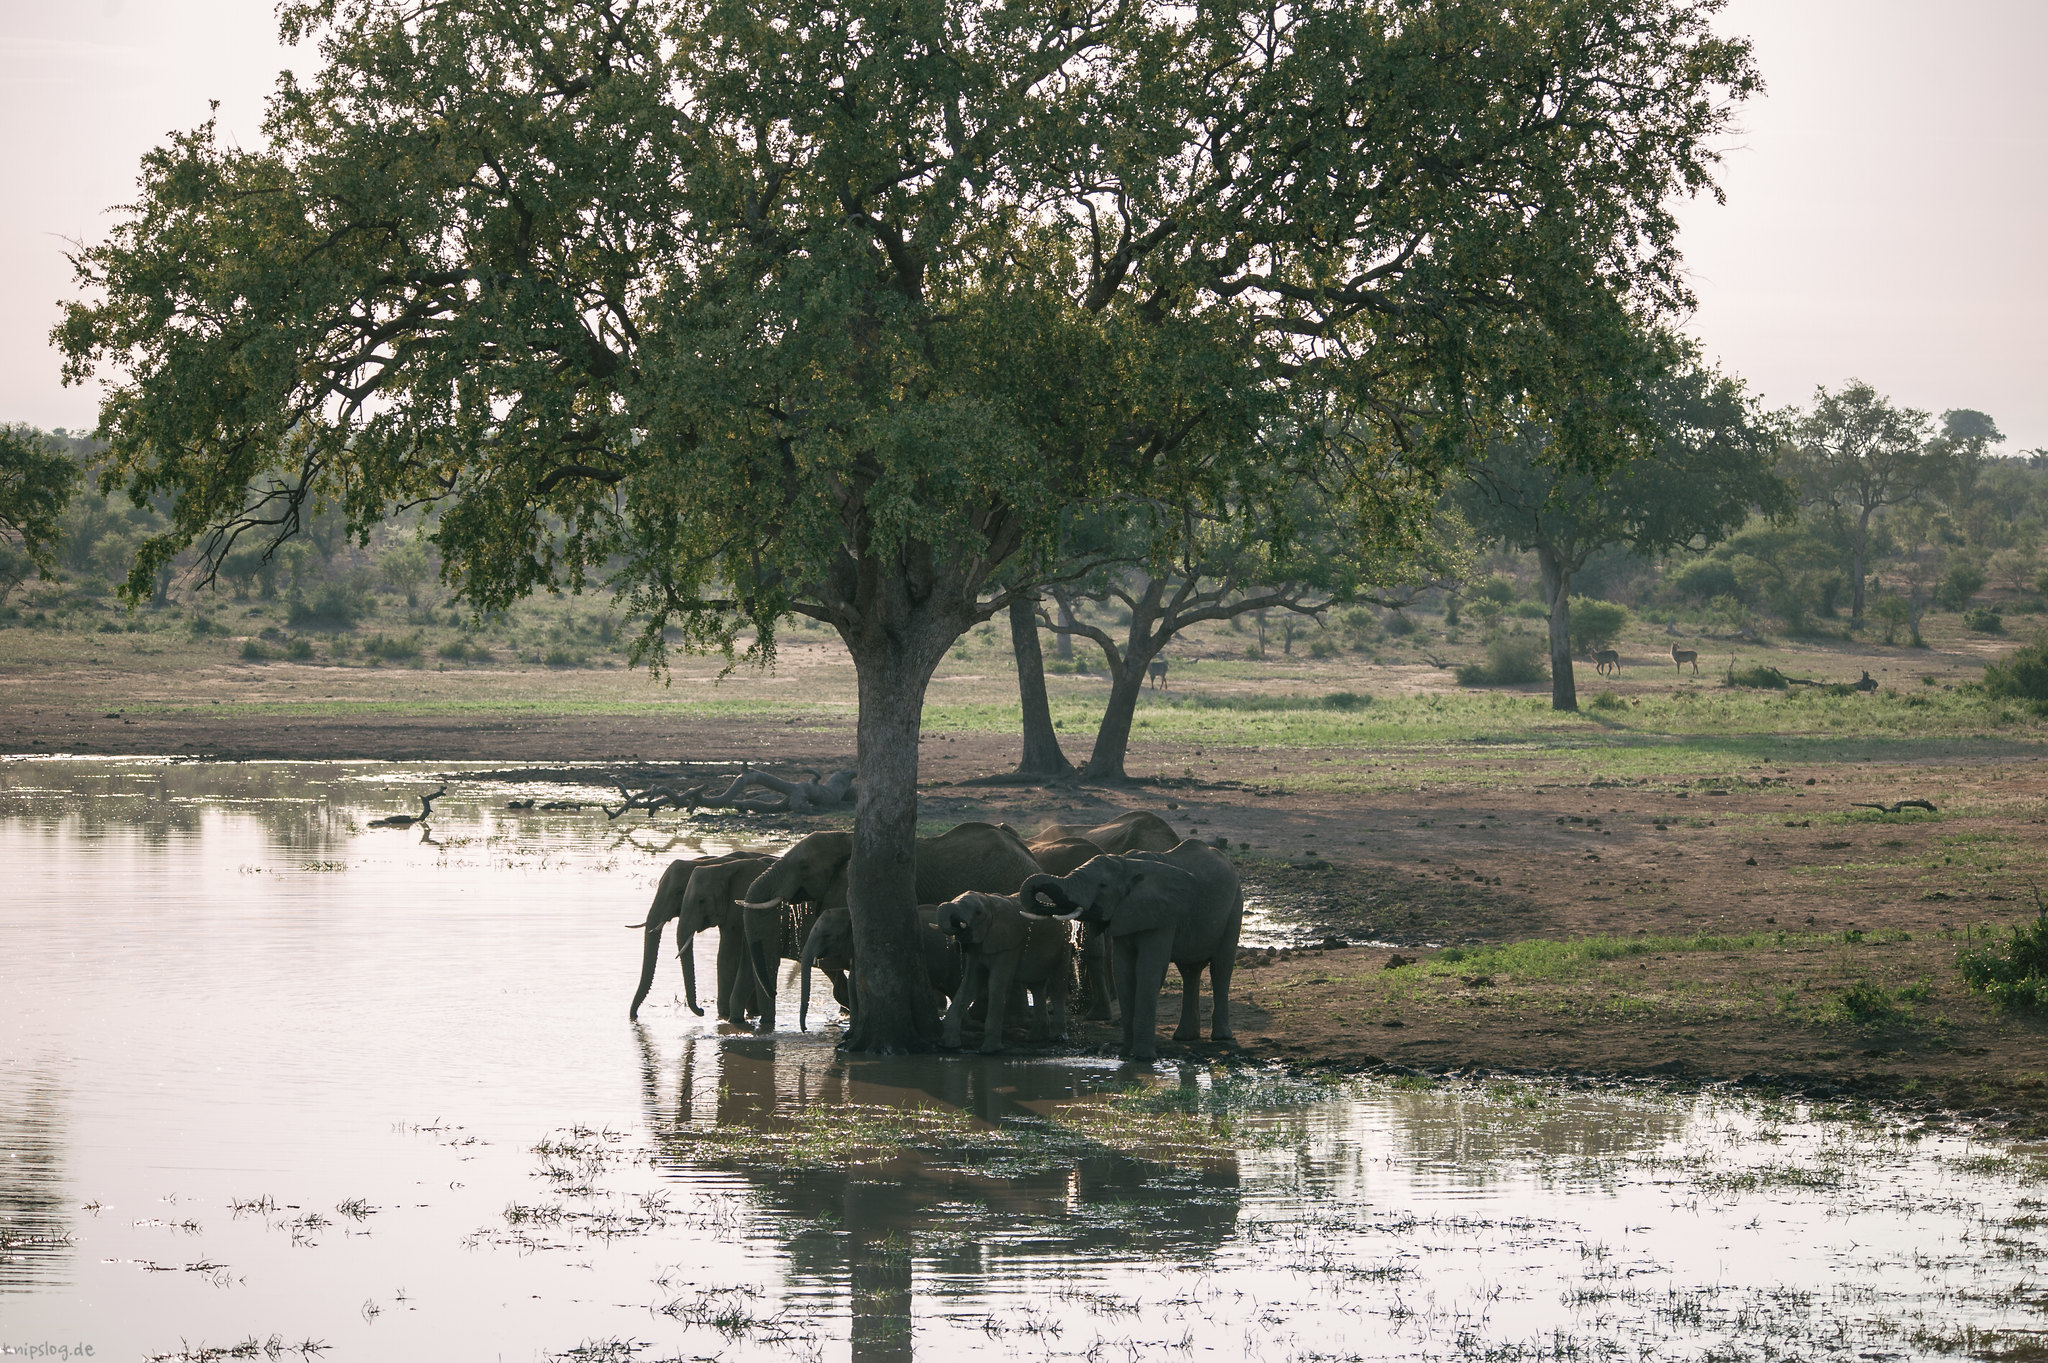 Meeting on the water hole